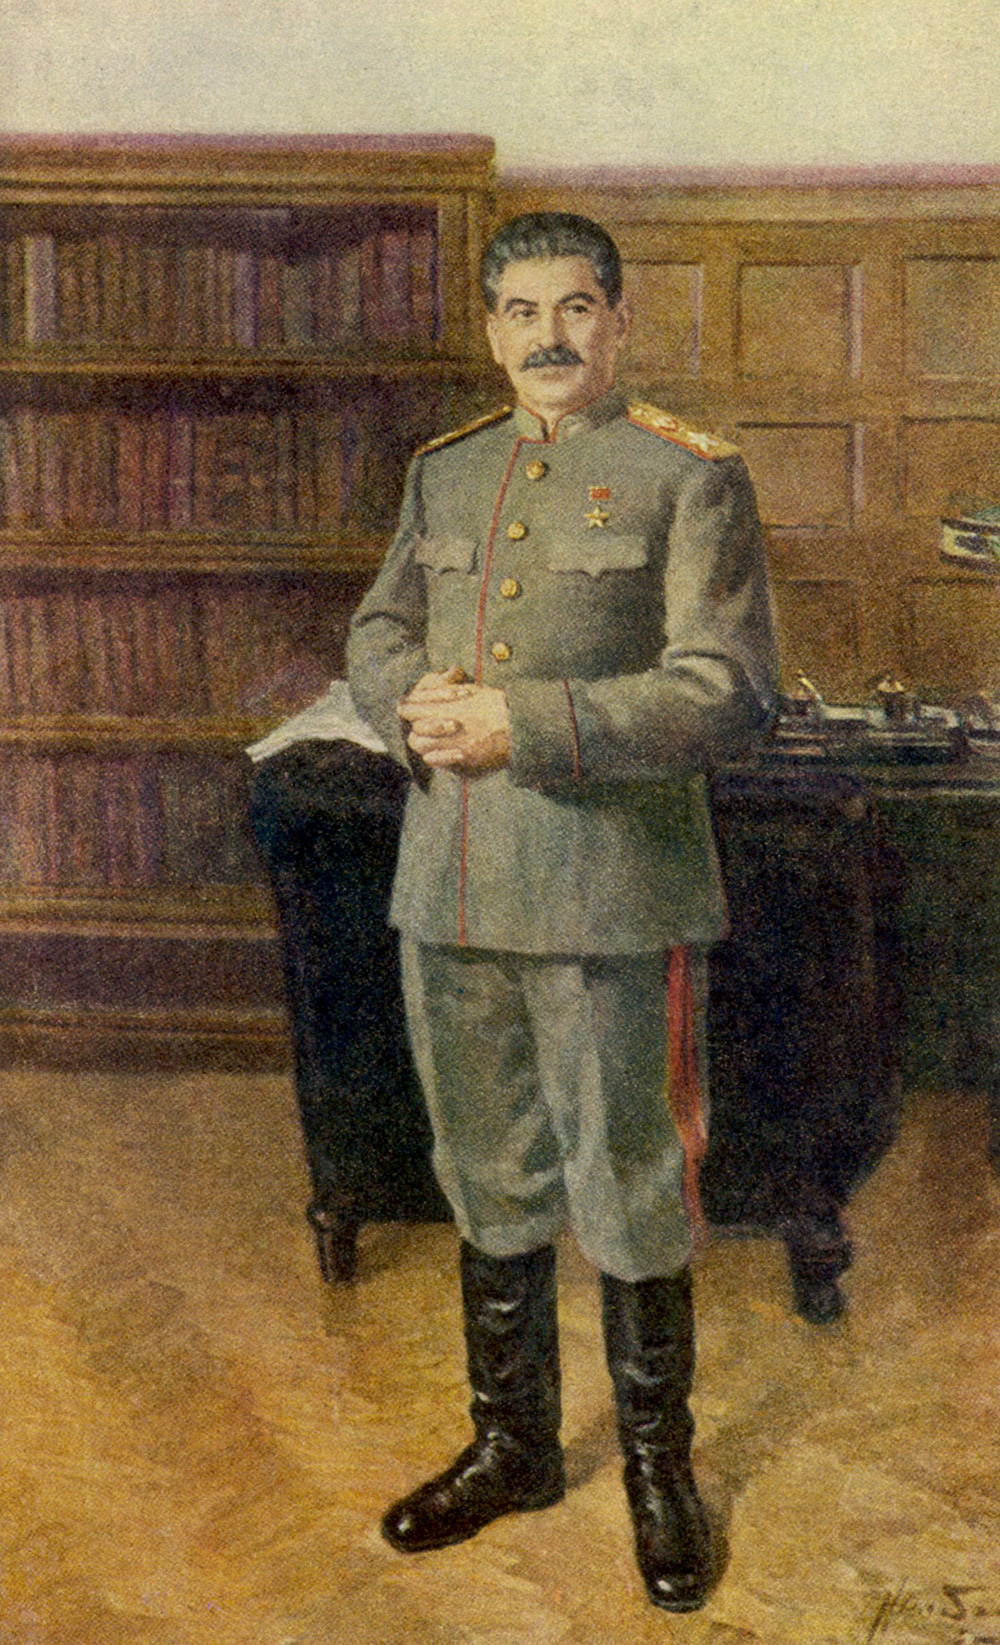 Joseph Stalin in his office, wearing military uniform as generalissimo of the Soviet armed forces. / Mary Evans Pictrure Library/Global Look Press